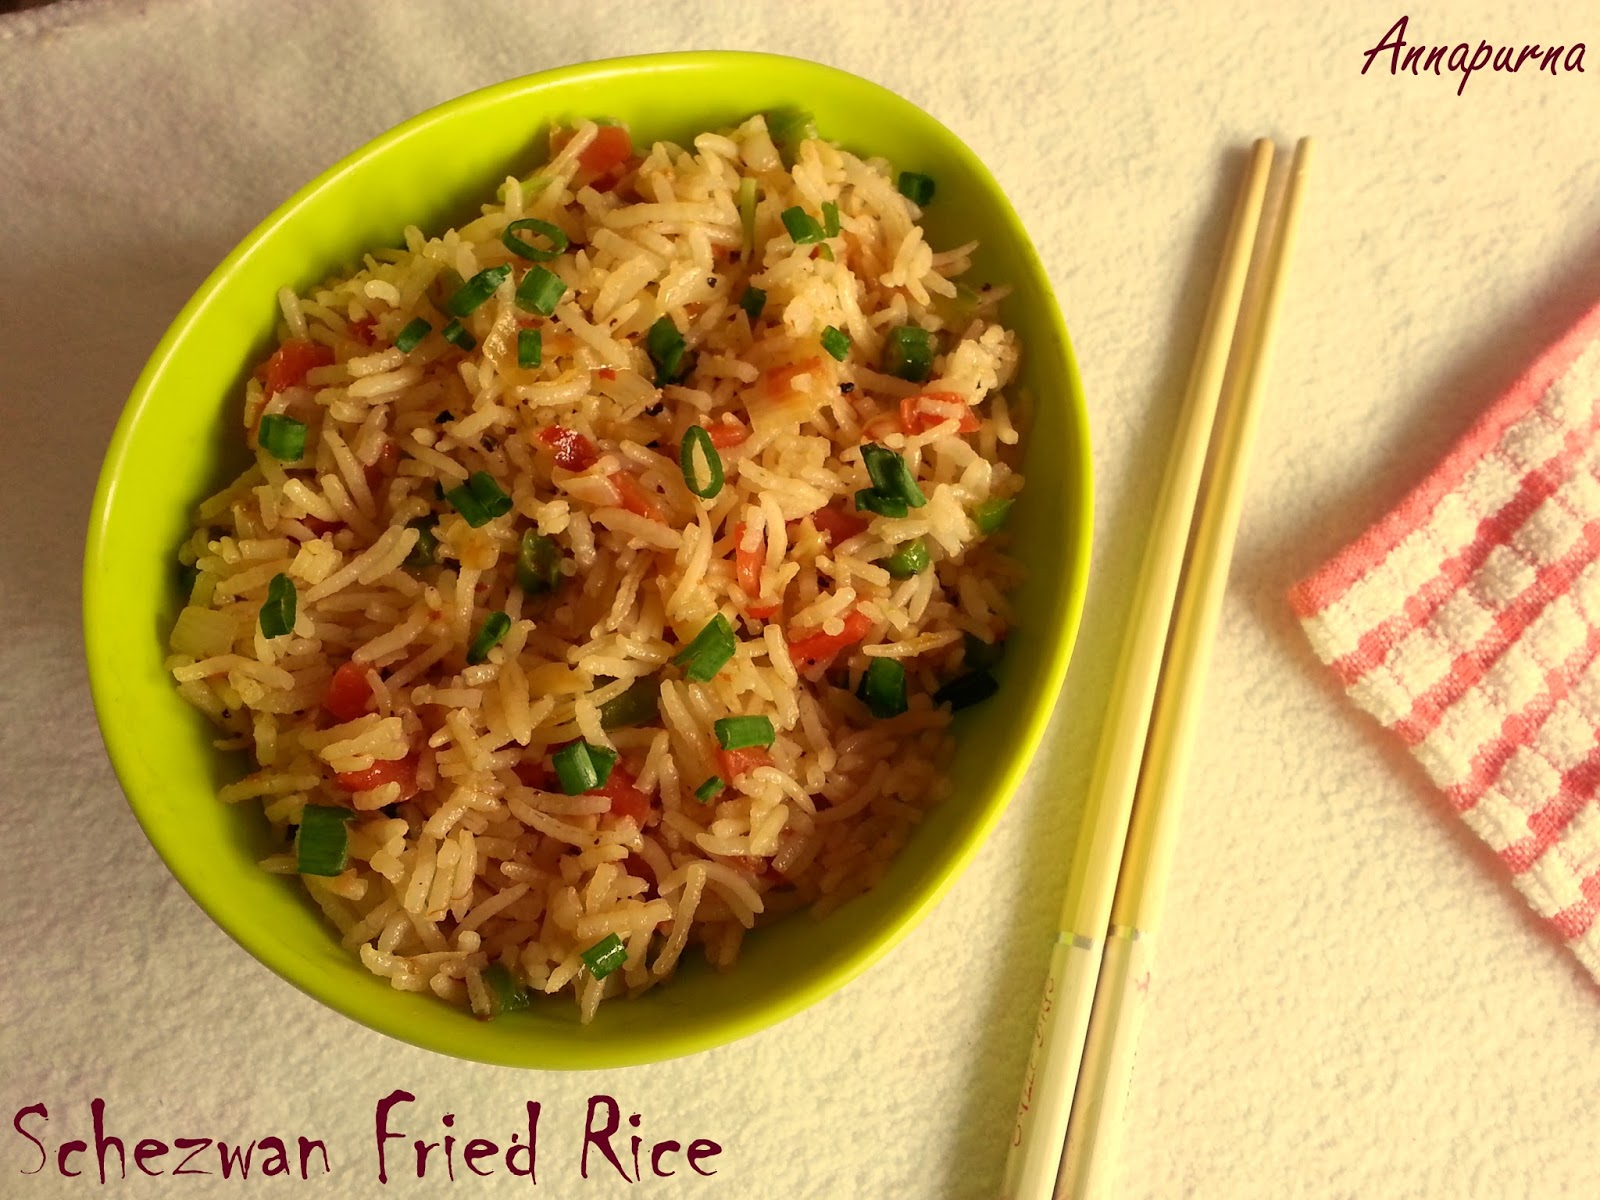 Annapurna: Schezwan Fried Rice / Indo-Chinese Cuisine